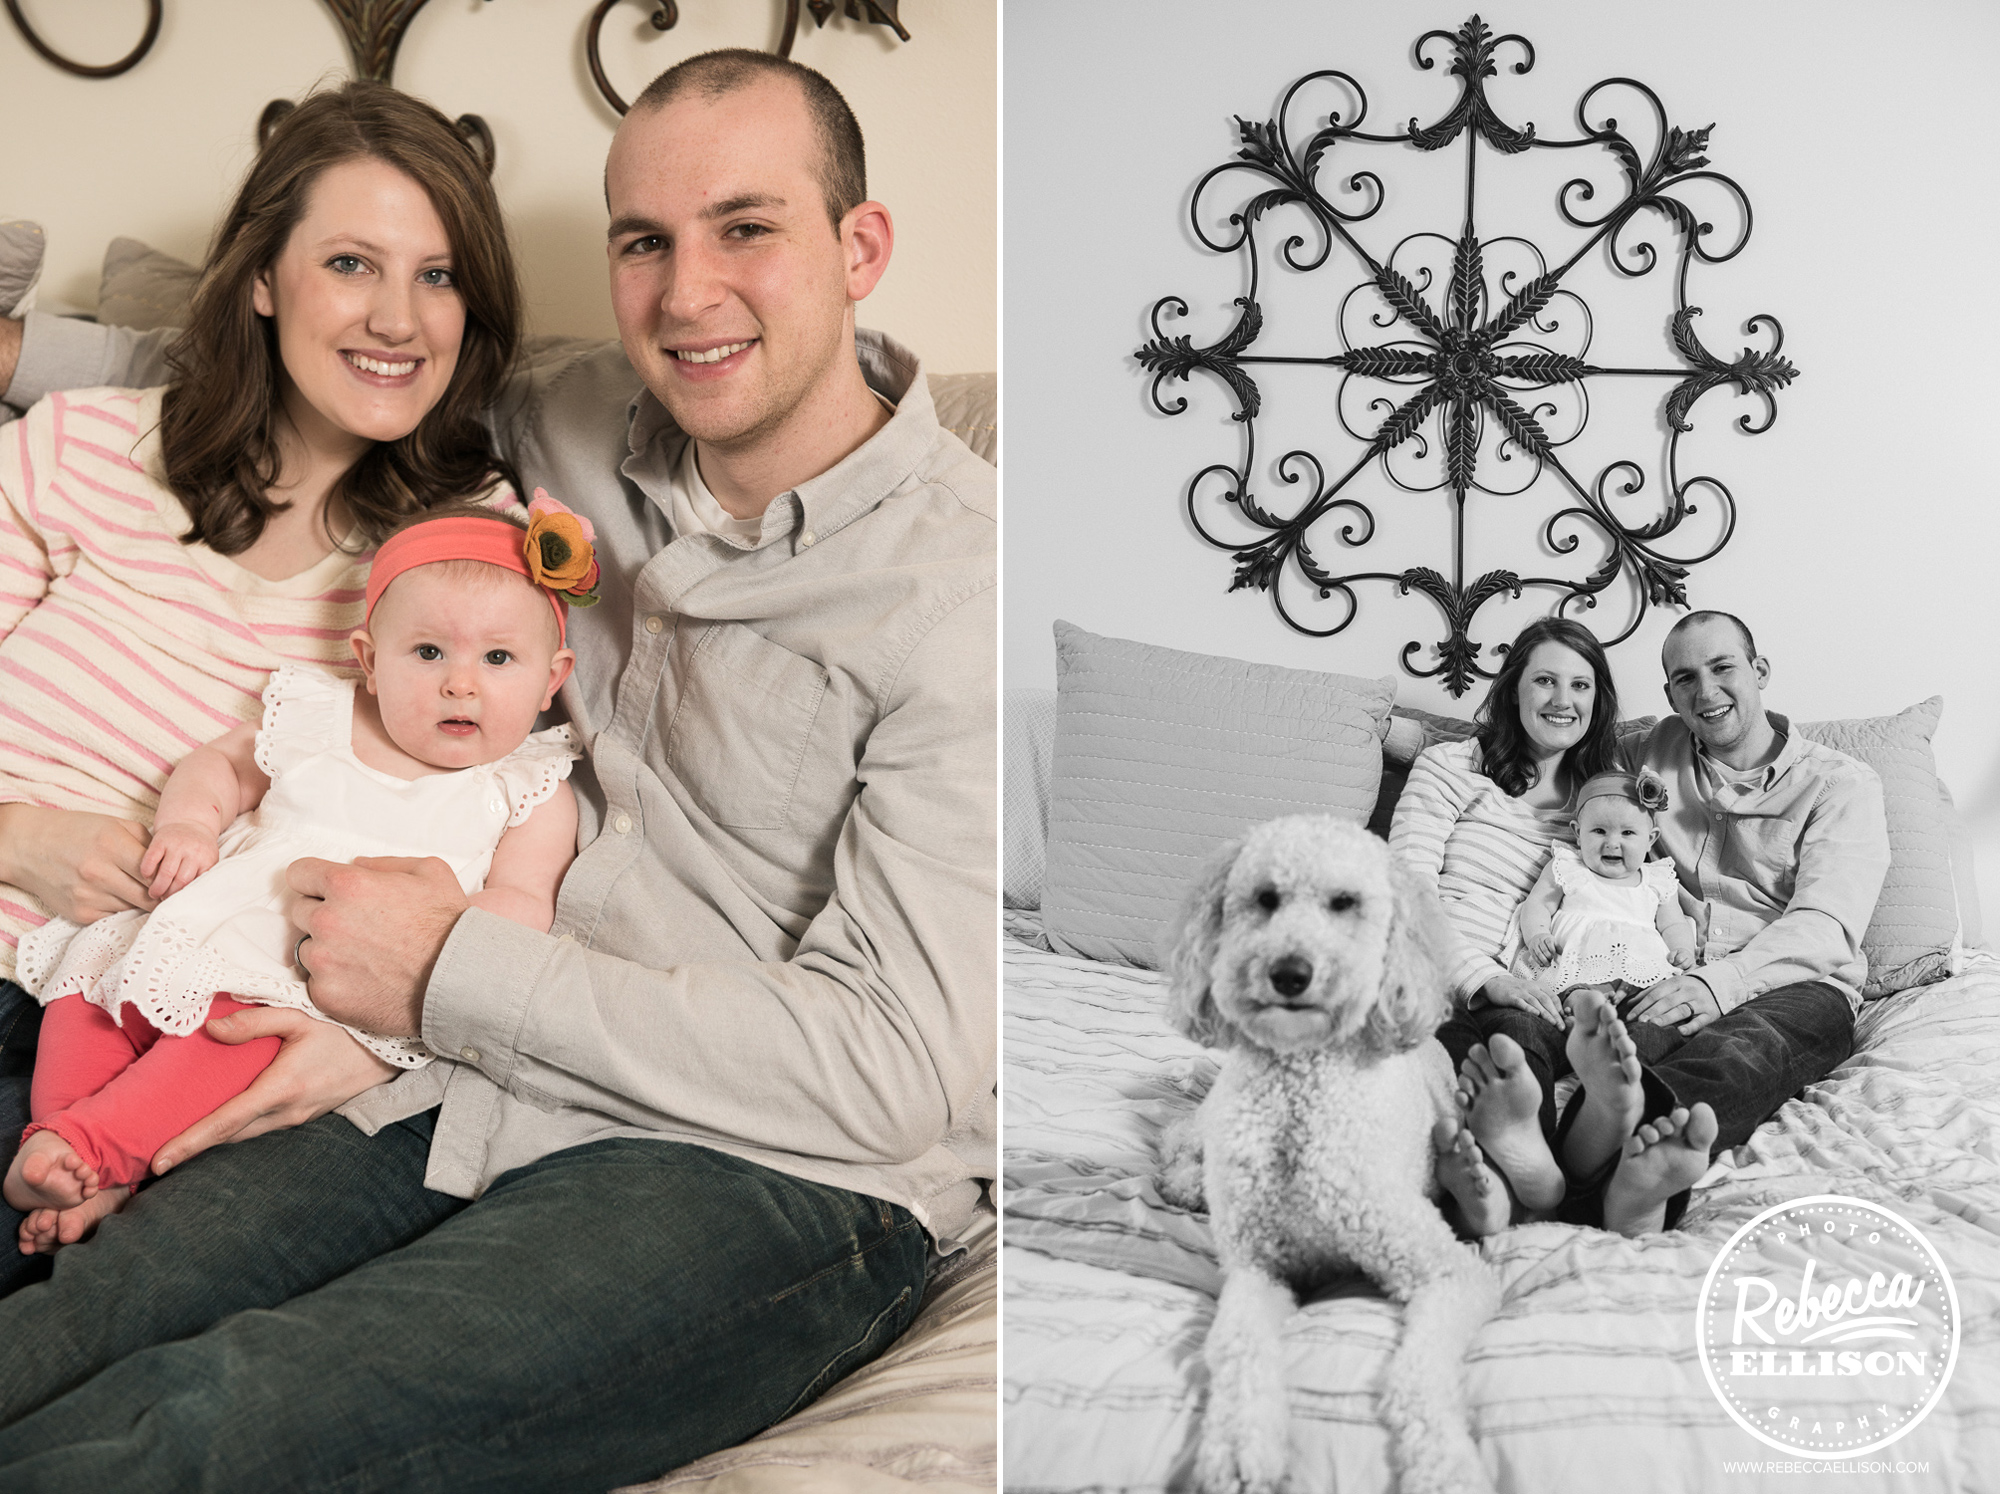 A family and their dog during a lifestyle photography session in Bellevue, Washington photographed by Rebecca Ellison Photography